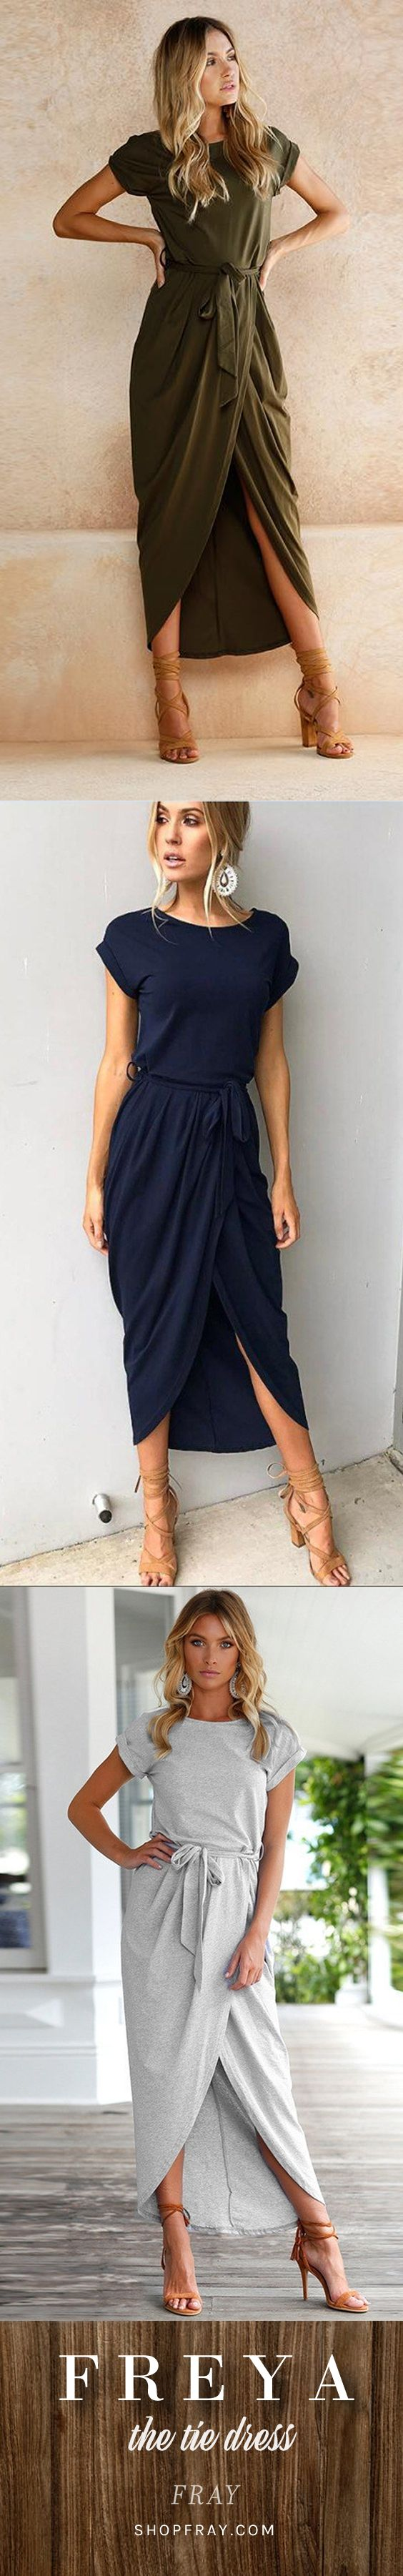 This cute little dress is 60% off today. The perfect maxi/tie dress for your next get together ♥